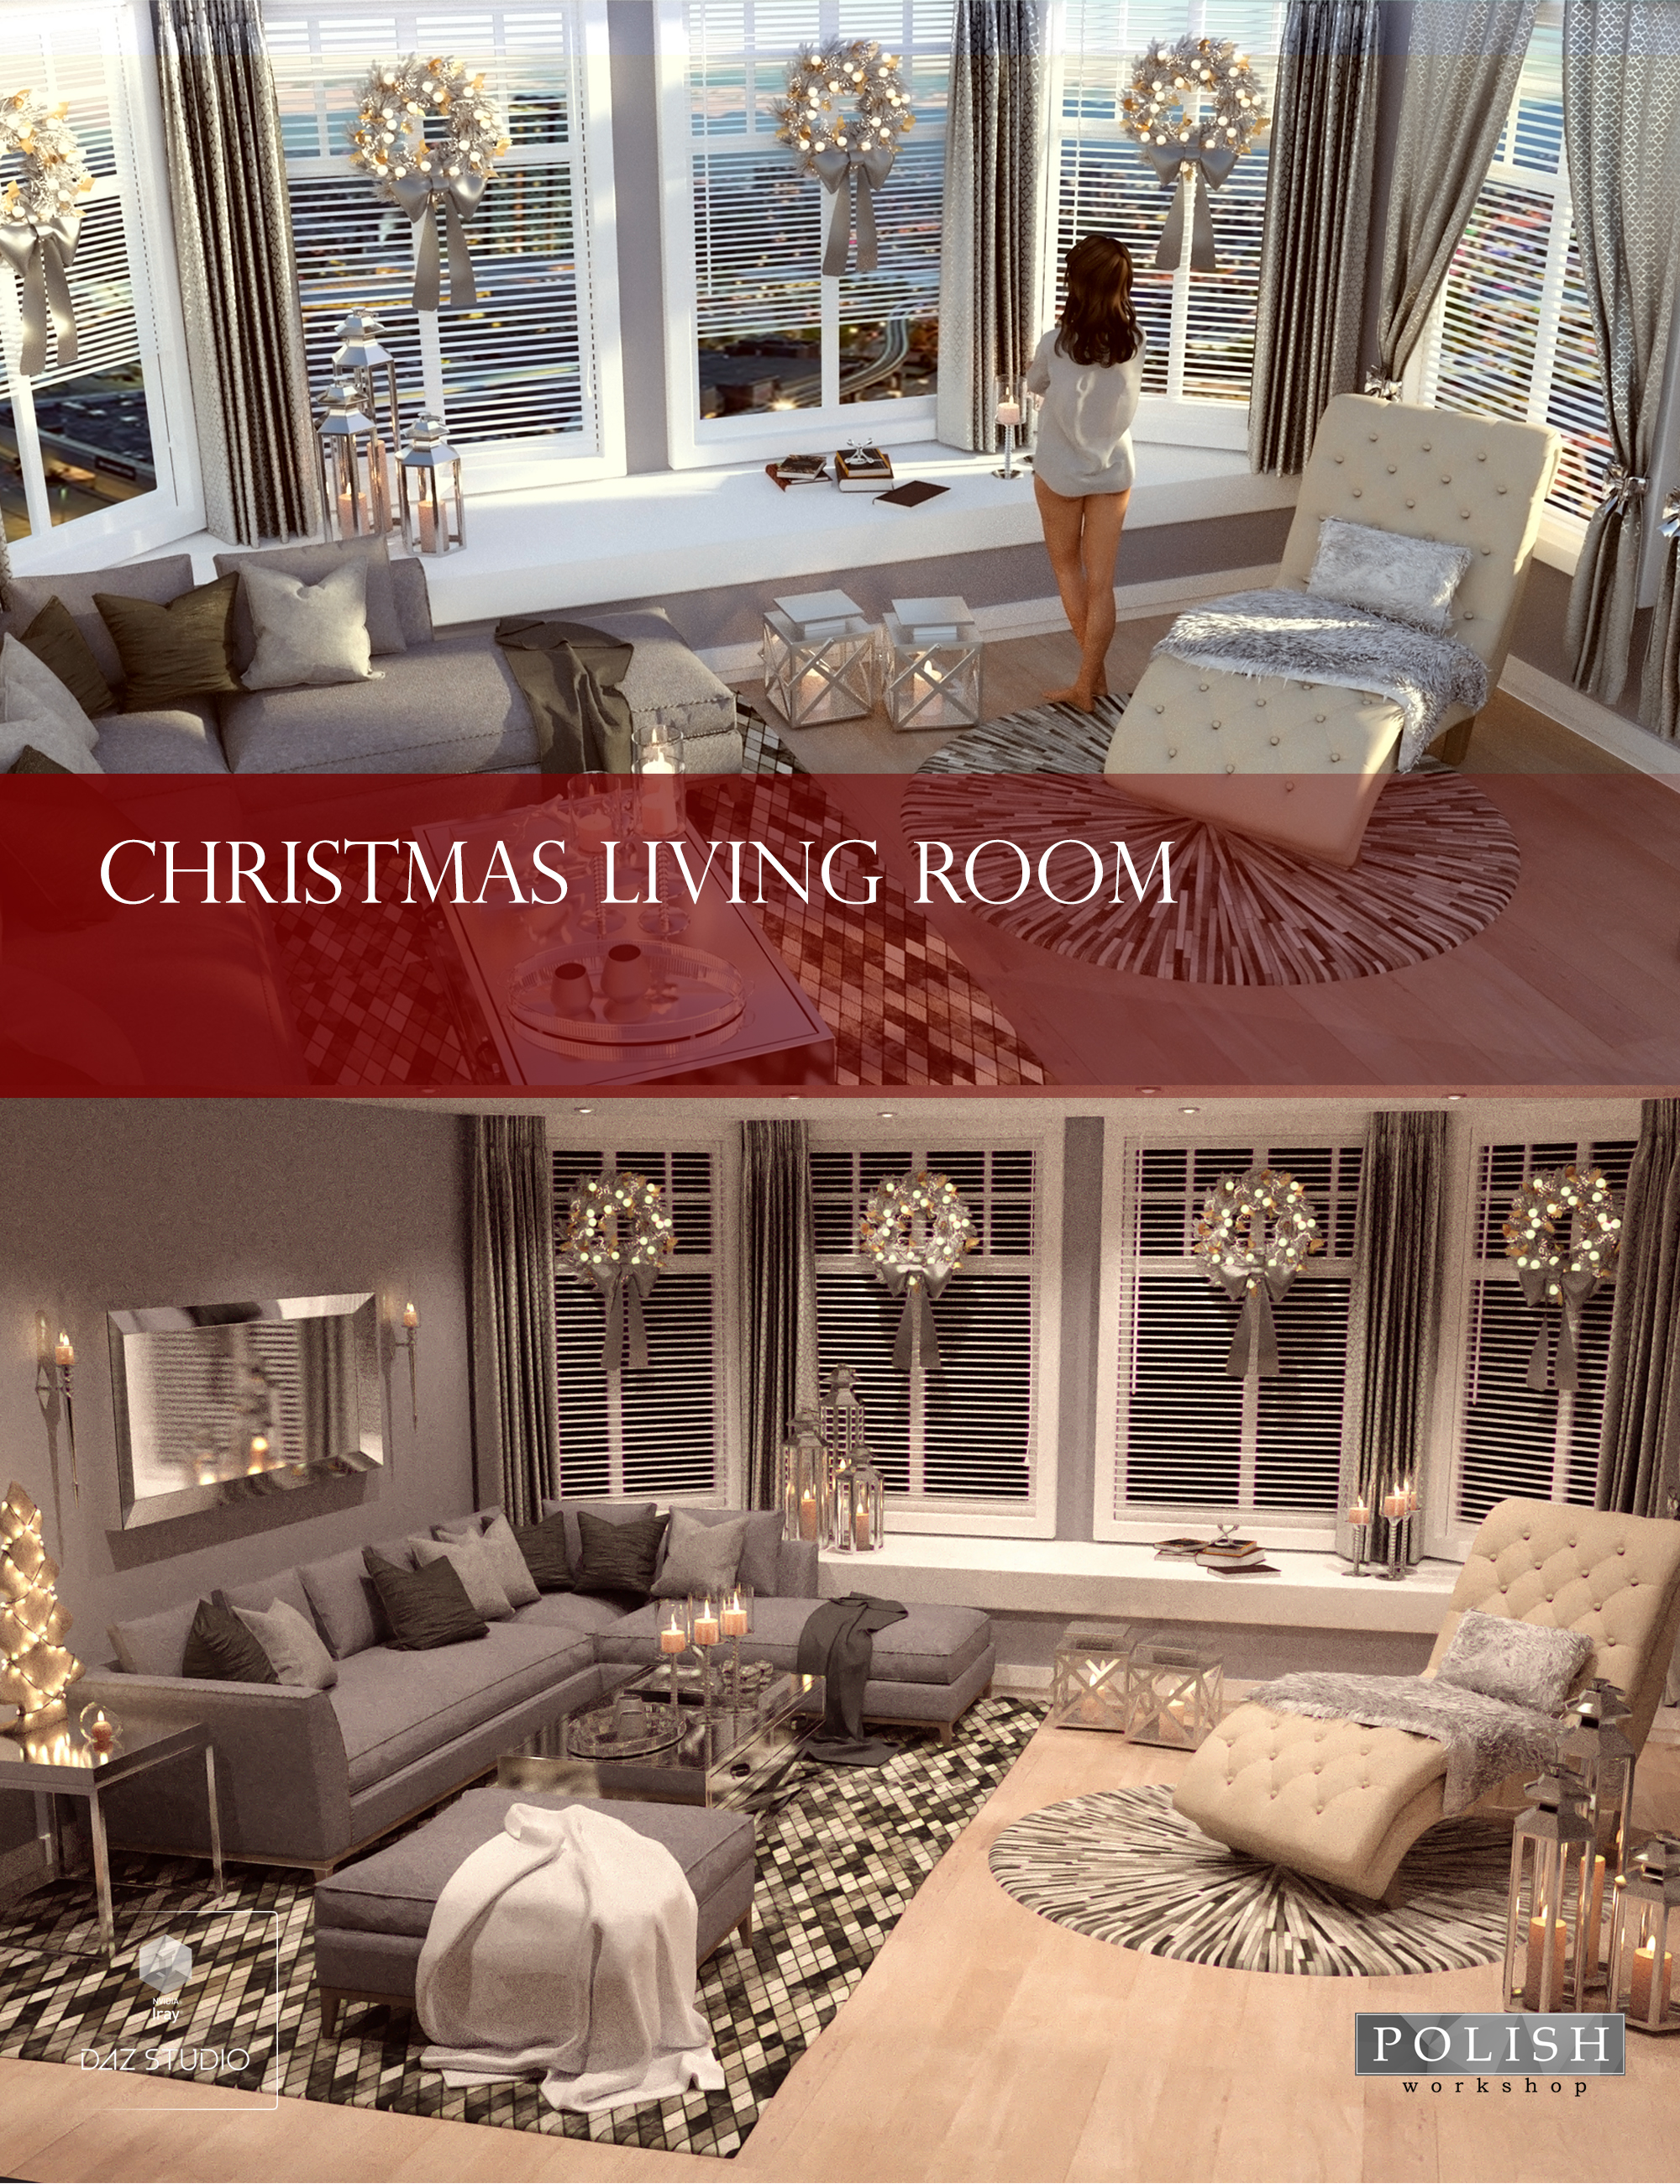 Christmas Living Room by: Polish, 3D Models by Daz 3D